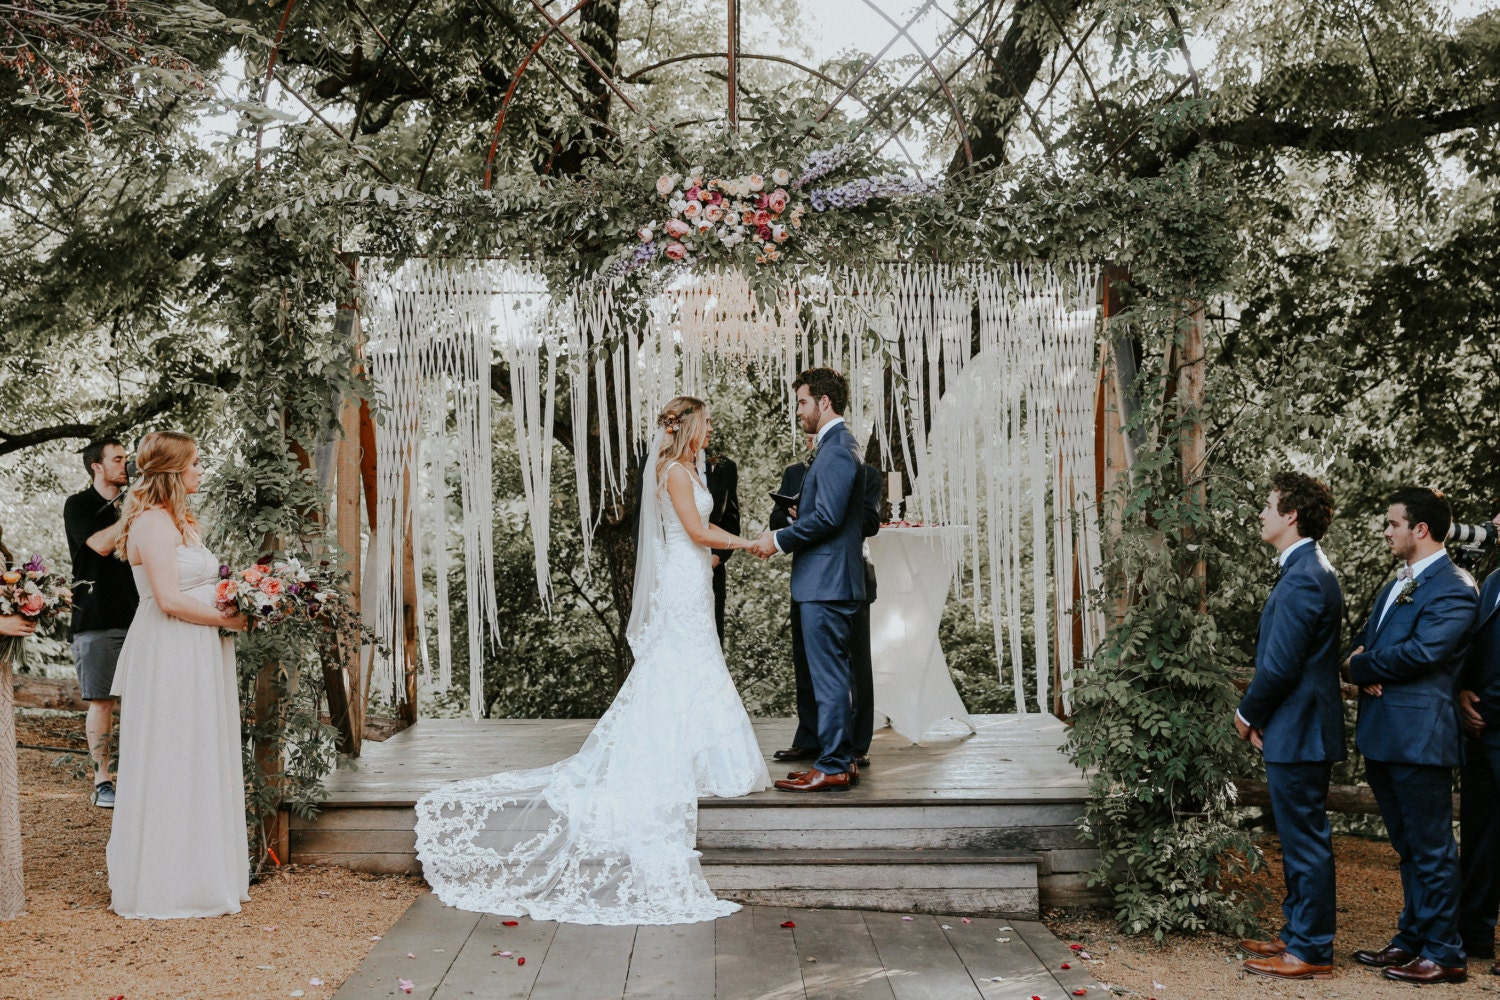 Large Macrame Wedding Backdrop For Decor At Indoor Or Outdoor